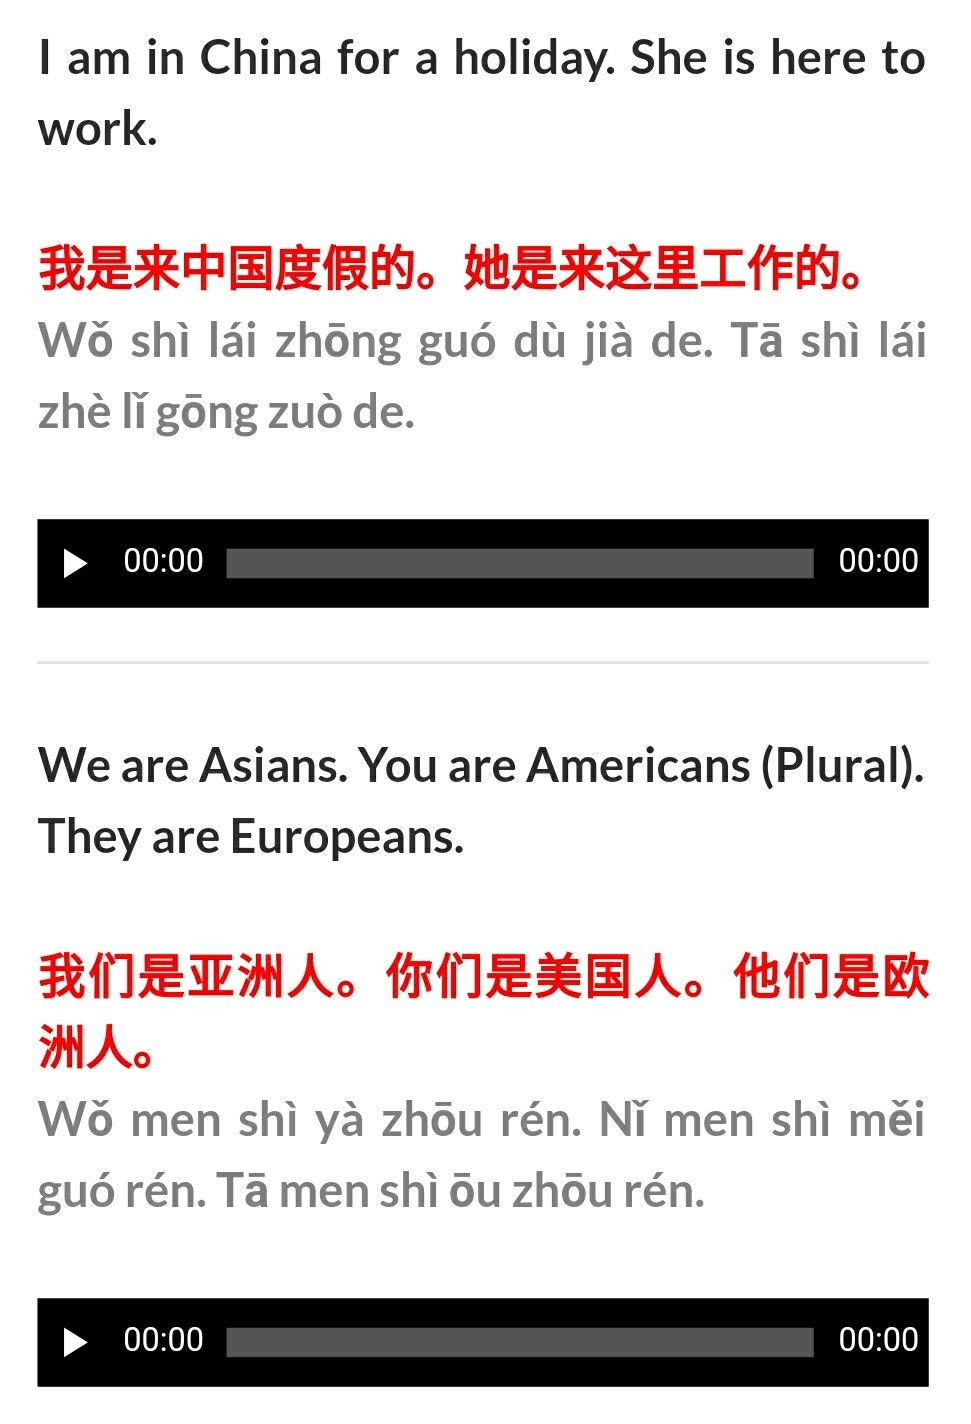 CHINESE PRONOUNS (SINGULAR & PLURAL) WITH VERB TO BE (I AM) Simple Formula: Subject Pronouns + Verb to BE … | Chinese phrases, How to speak ...